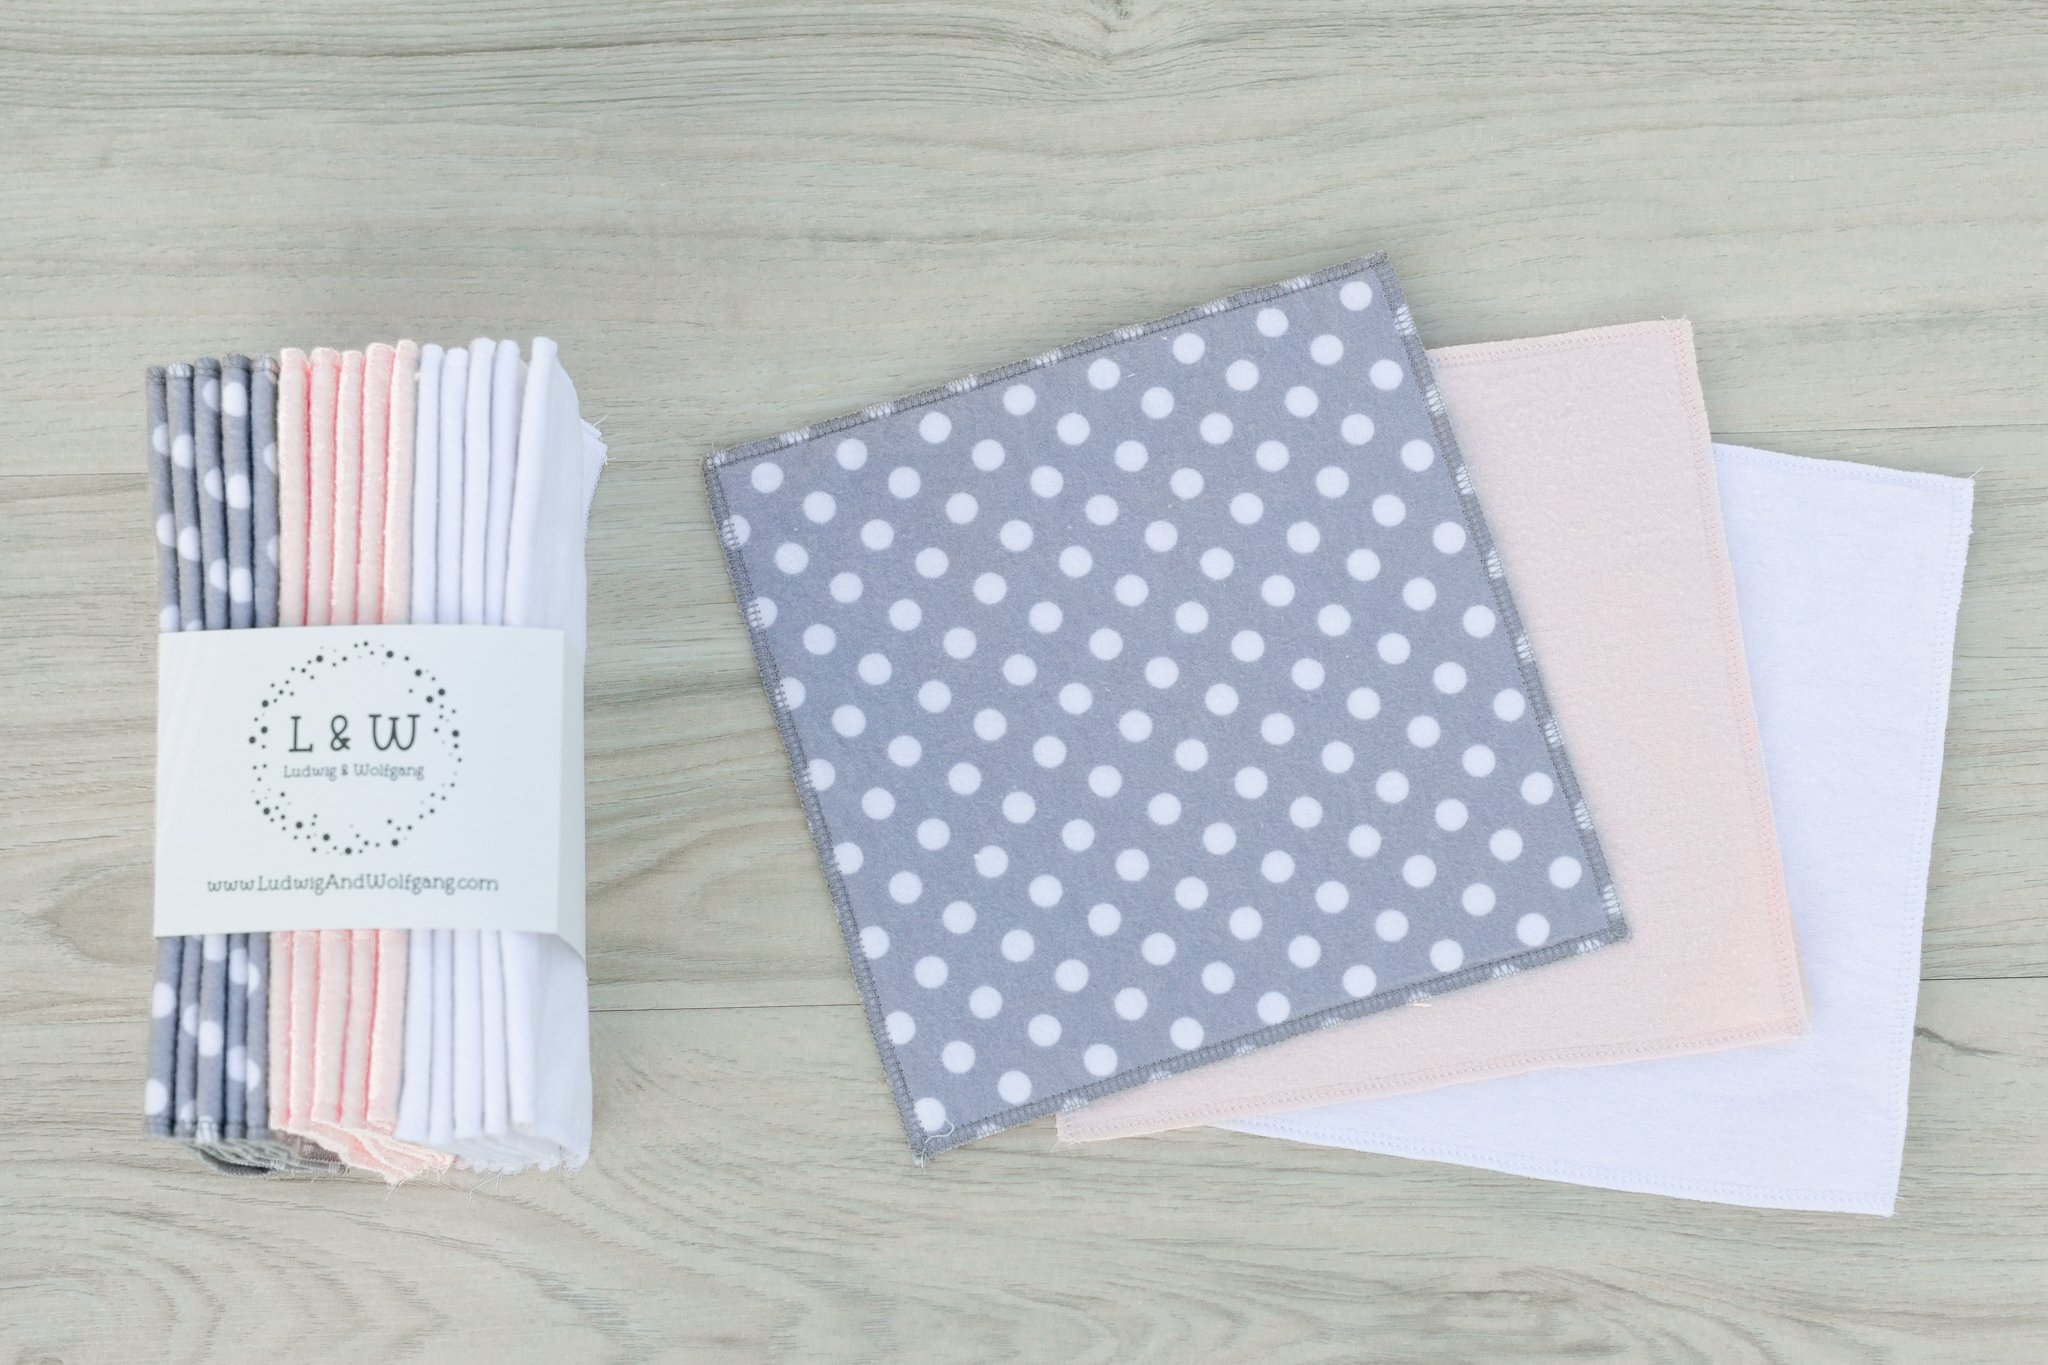 Bundle of Wipes (5 ea. 2-Ply, Gray Polka Dot, Pink & White Flannel)